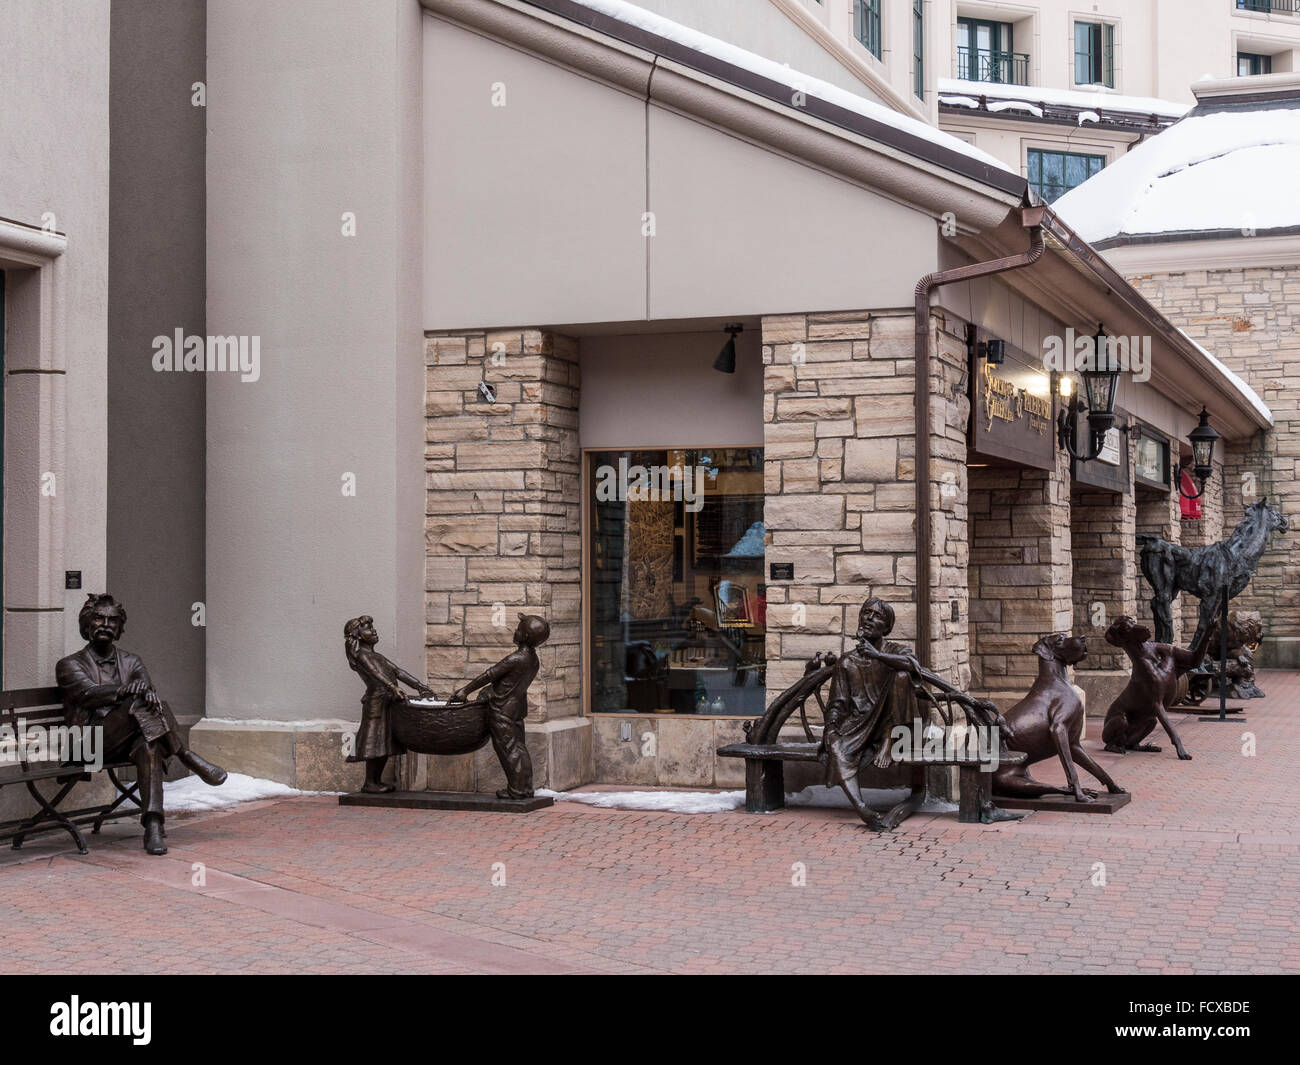 Beaver Creek Village mall, Beaver Creek Ski Resort, Avon, Colorado. - Stock Image